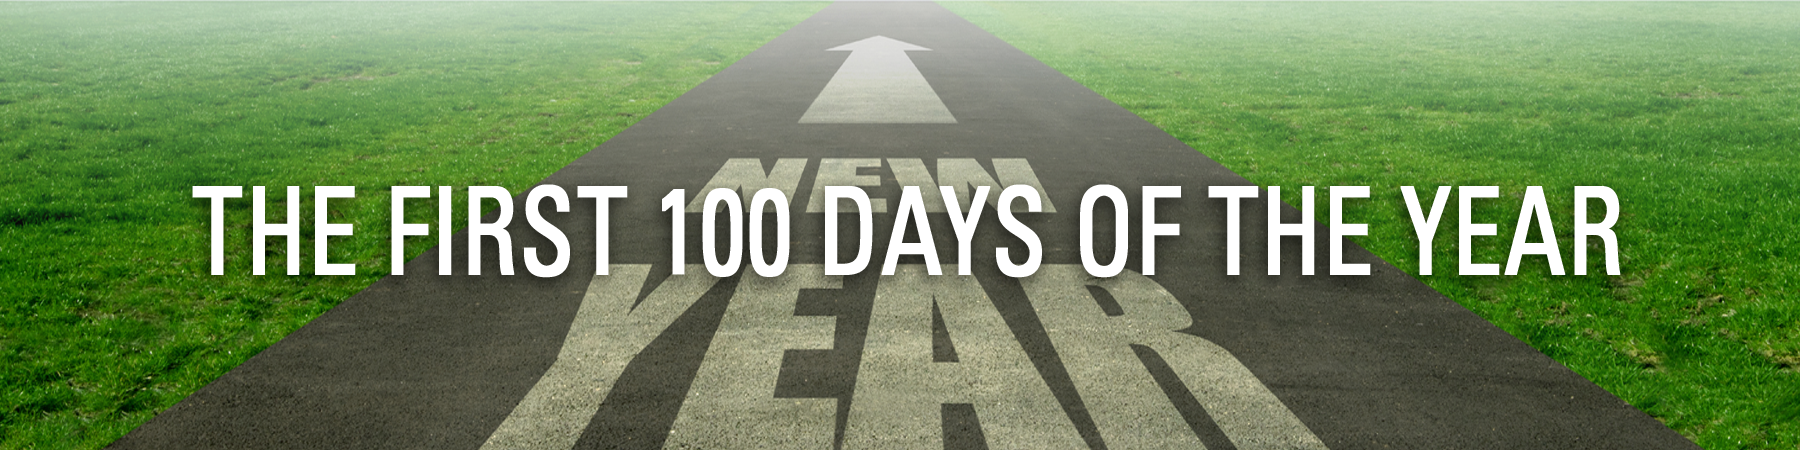 The First 100 Days Of The Year